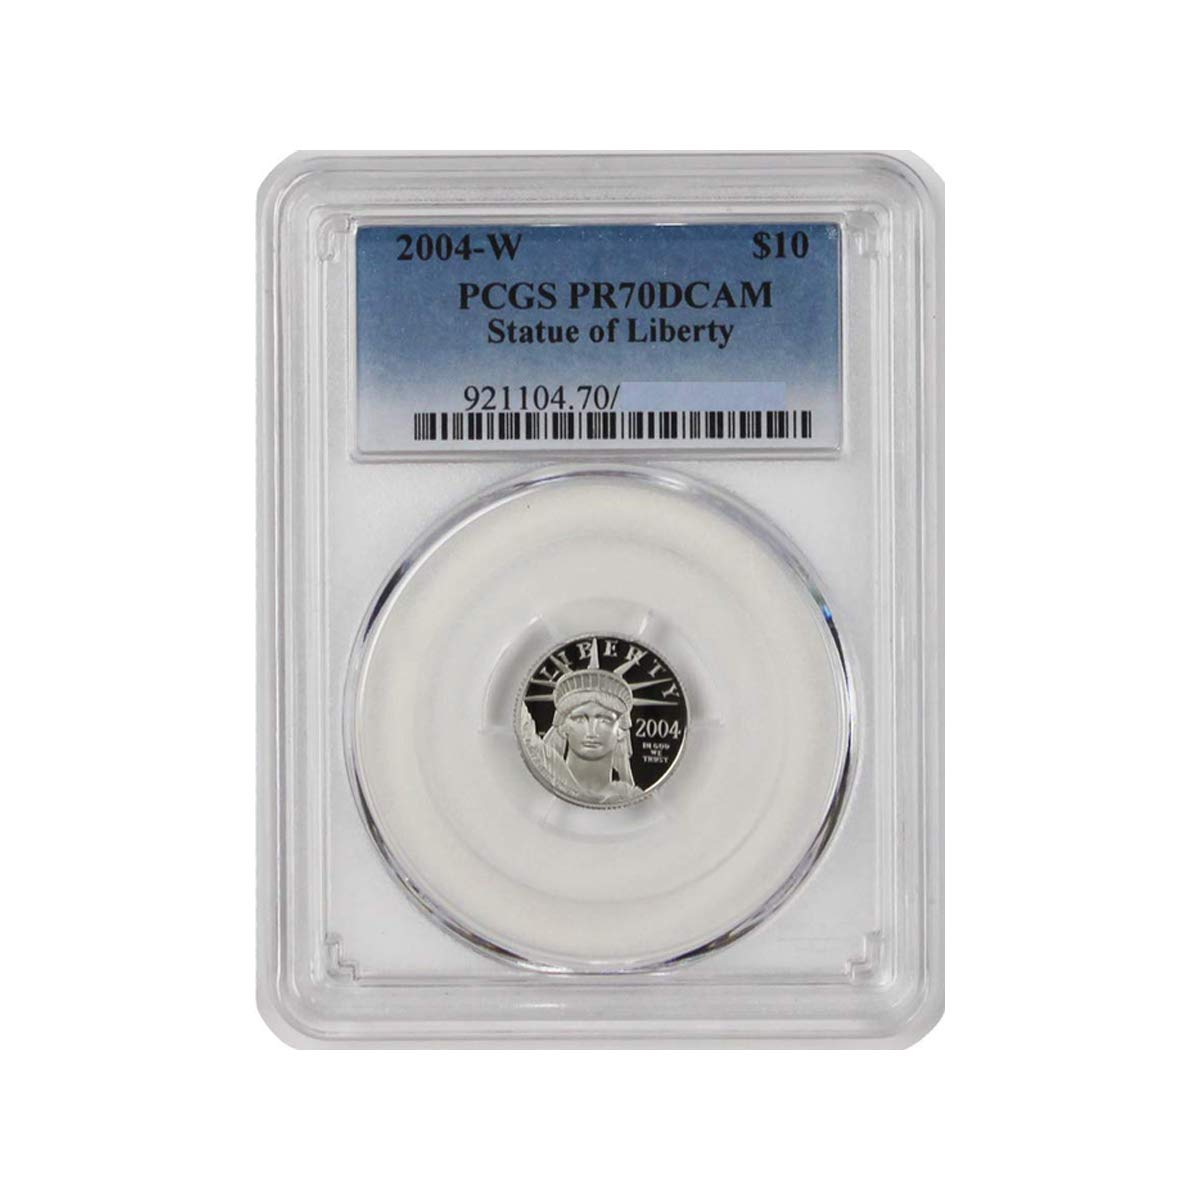 2004 W 1/10oz Platinum Statue of Liberty Proof Coin $10 PR70DCAM PCGS at Amazons Collectible Coins Store